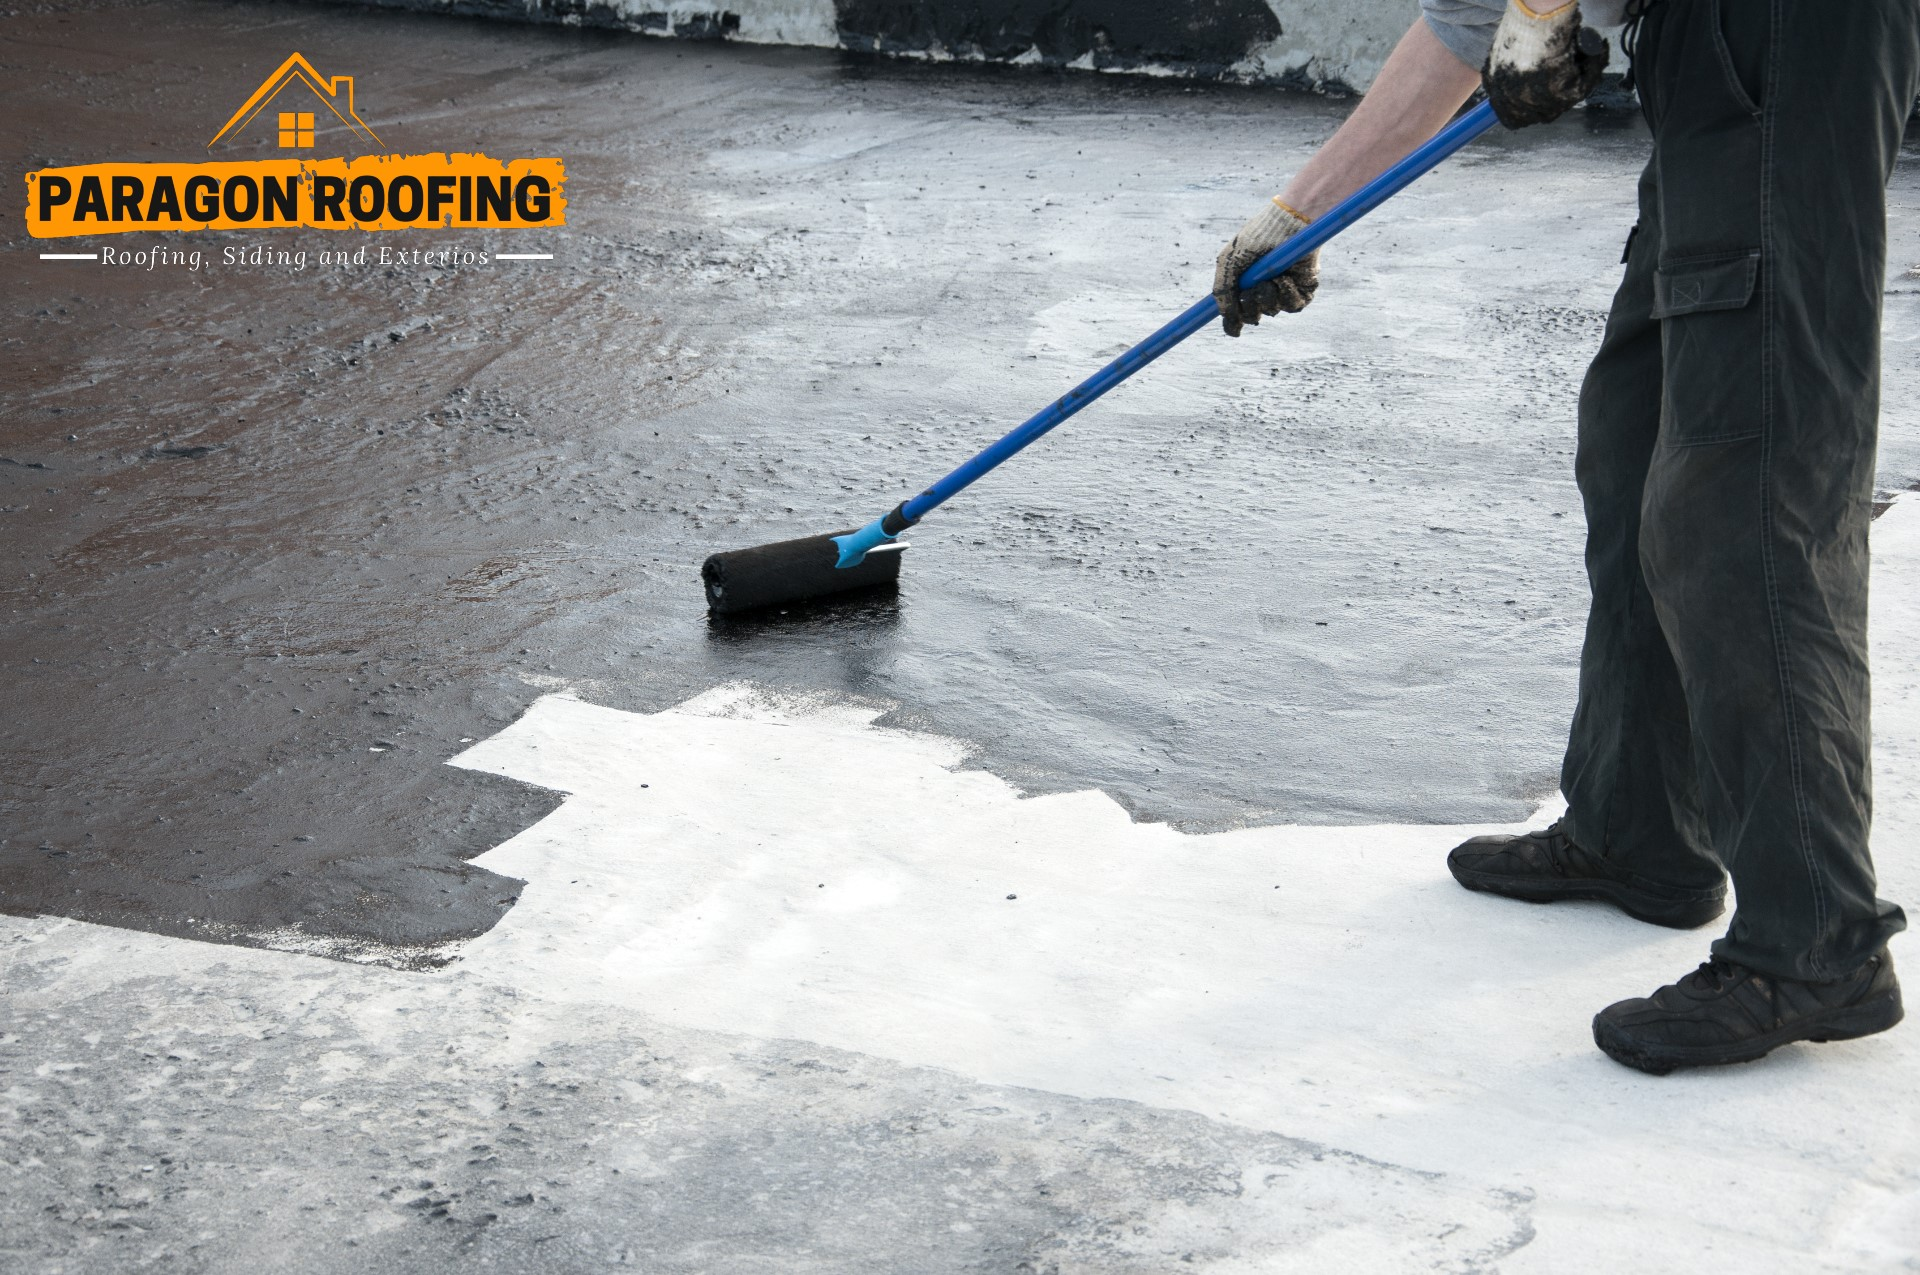 Paragon Roofing - Roof Repair Coating Services